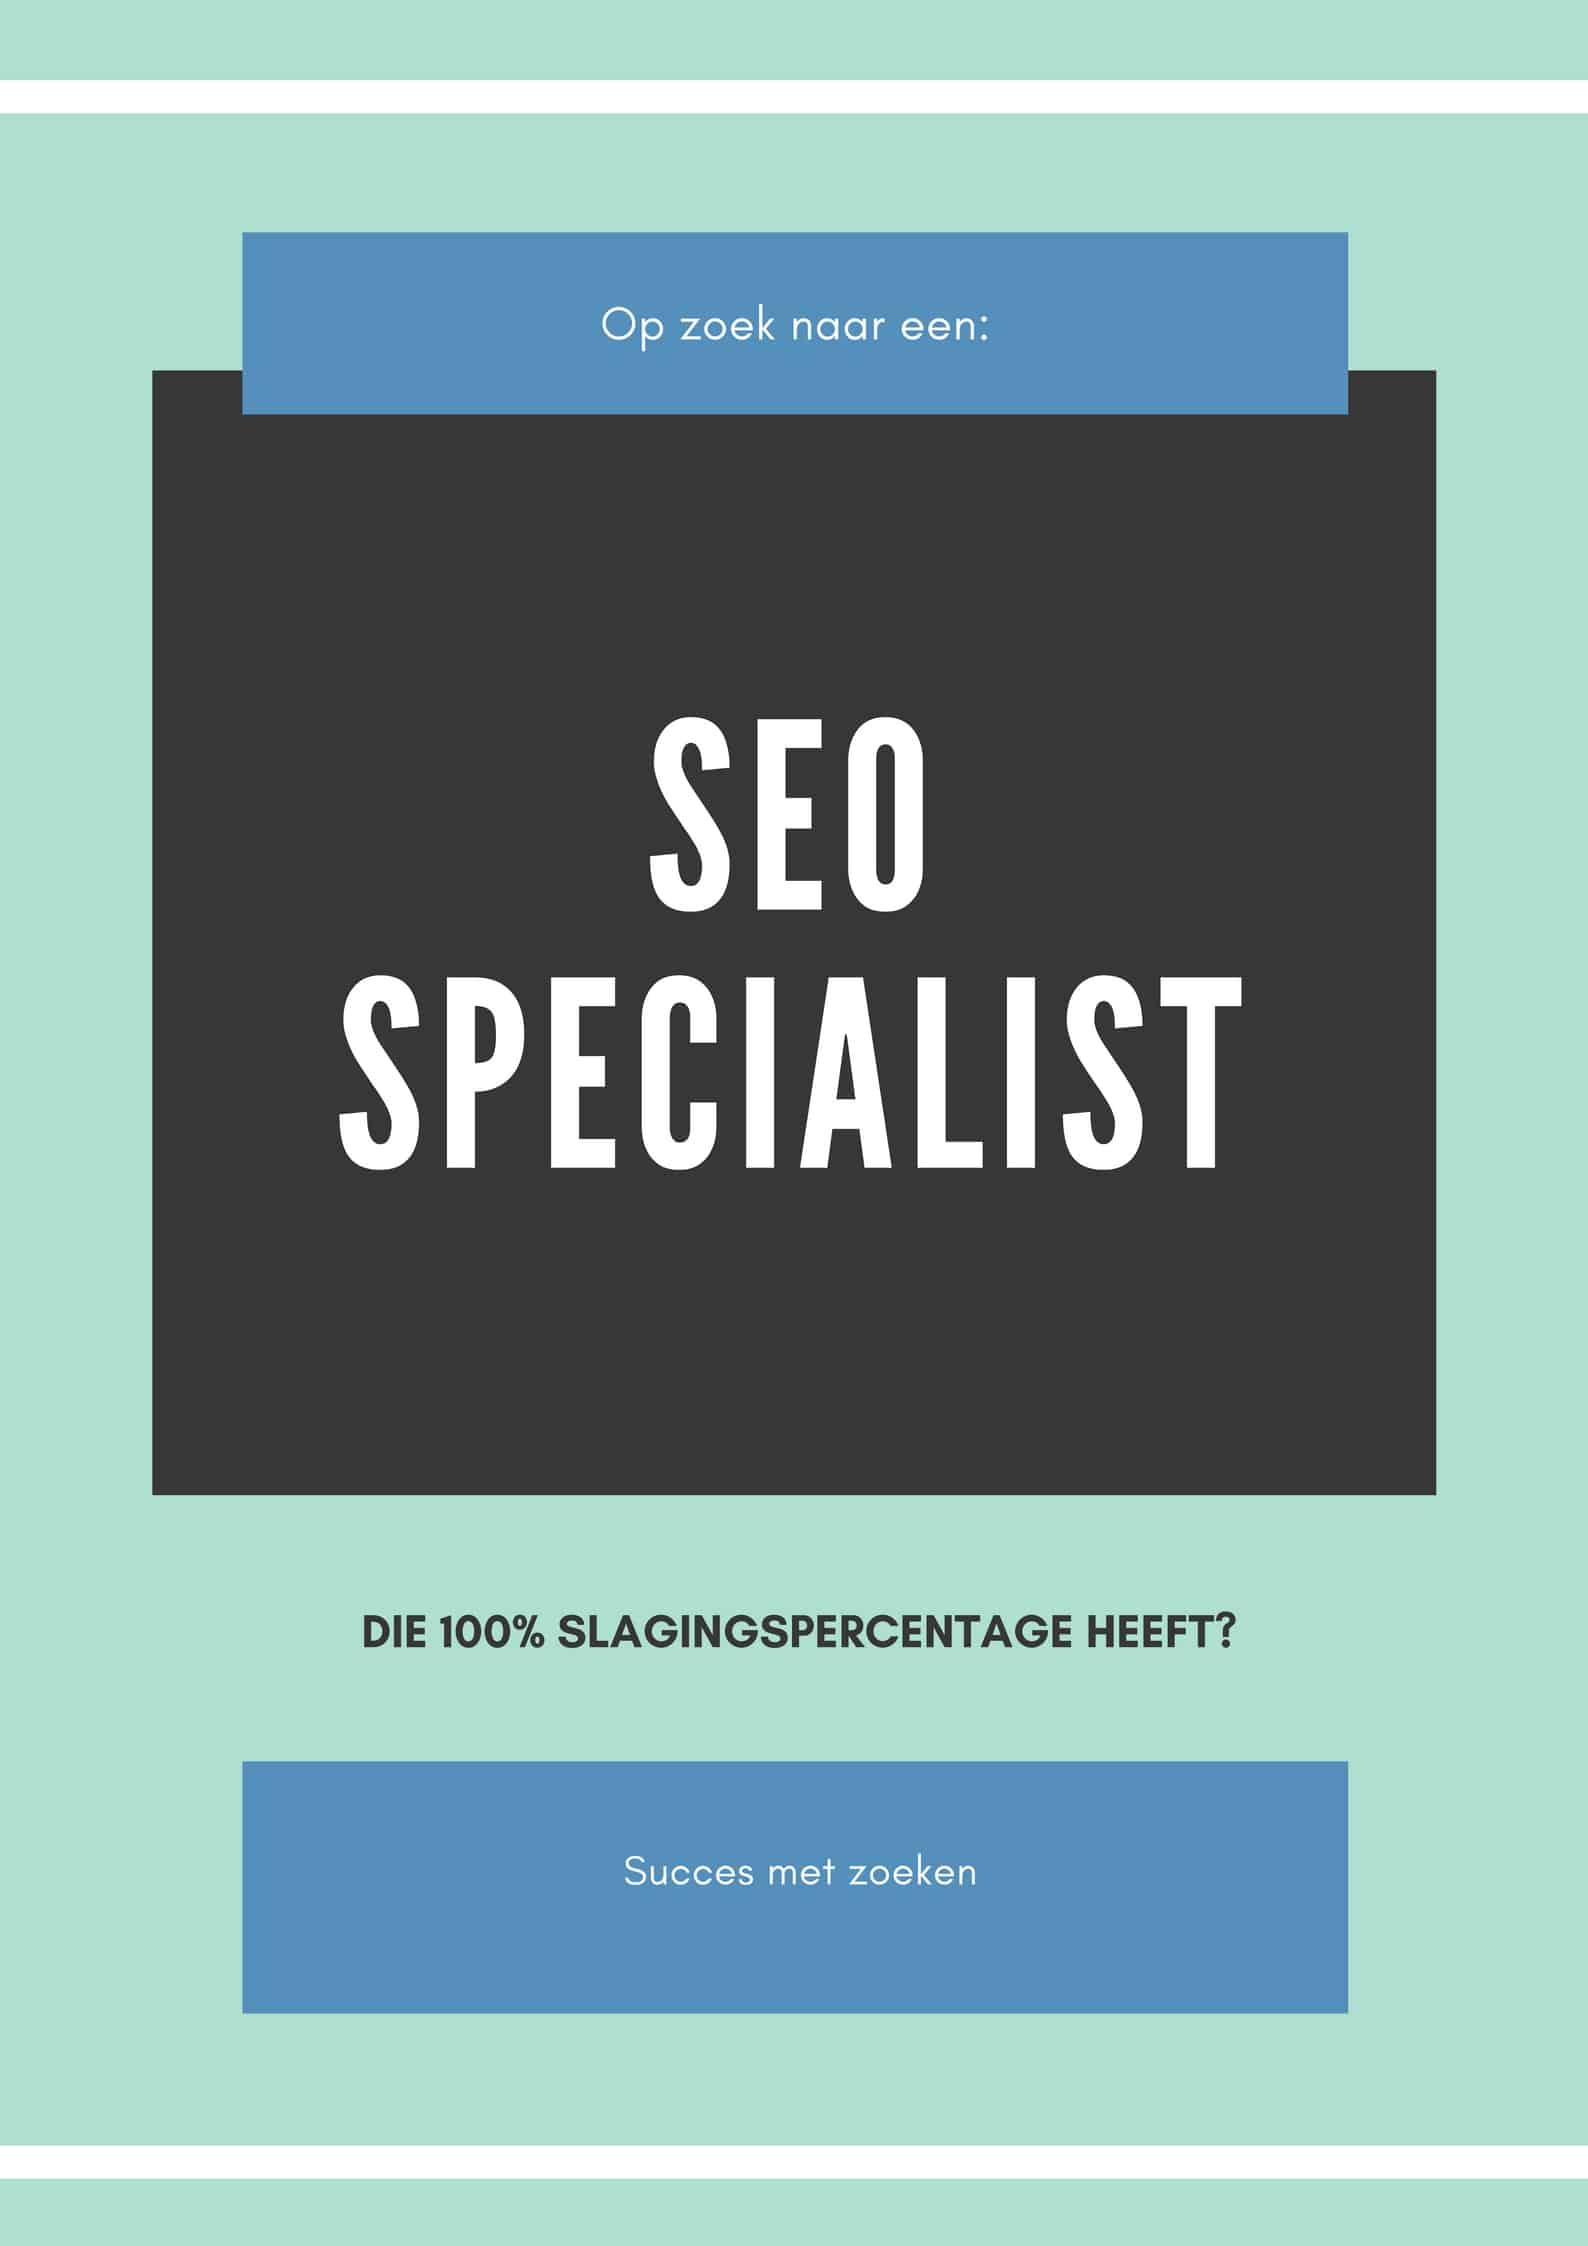 SEO specialist affiche